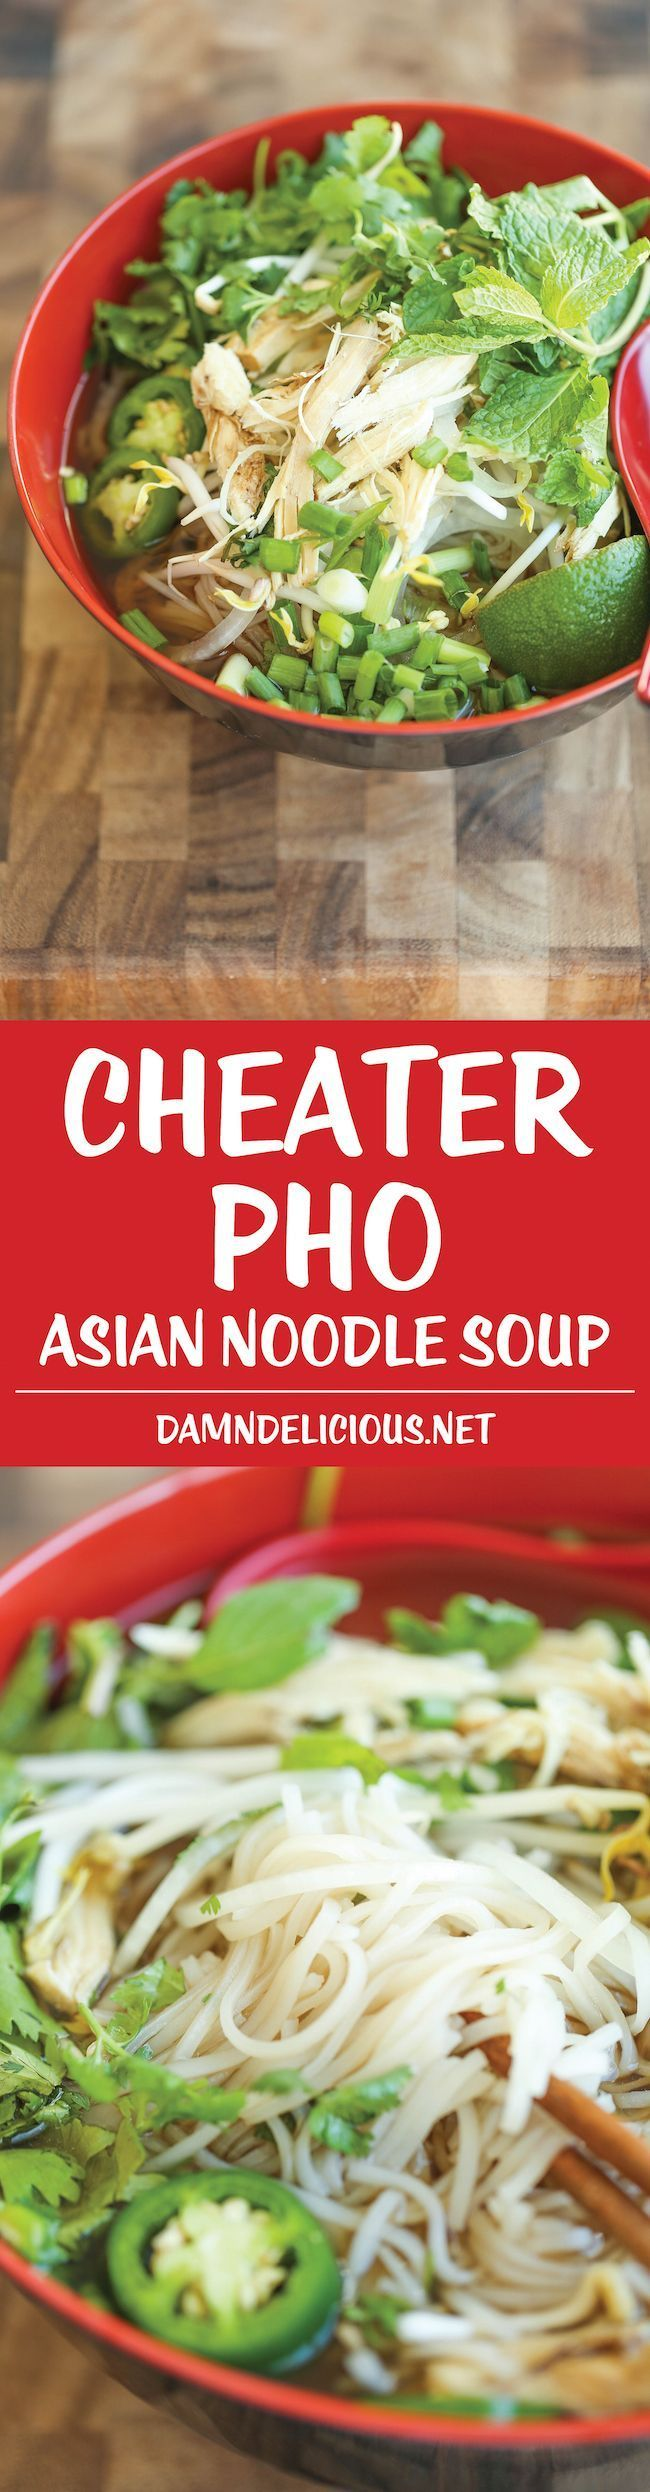 30 minute Pho (Asian Noodle Soup) - ​With this simplified version, you can have homemade pho on your table in 30 min or less. It doesn't get any easier!